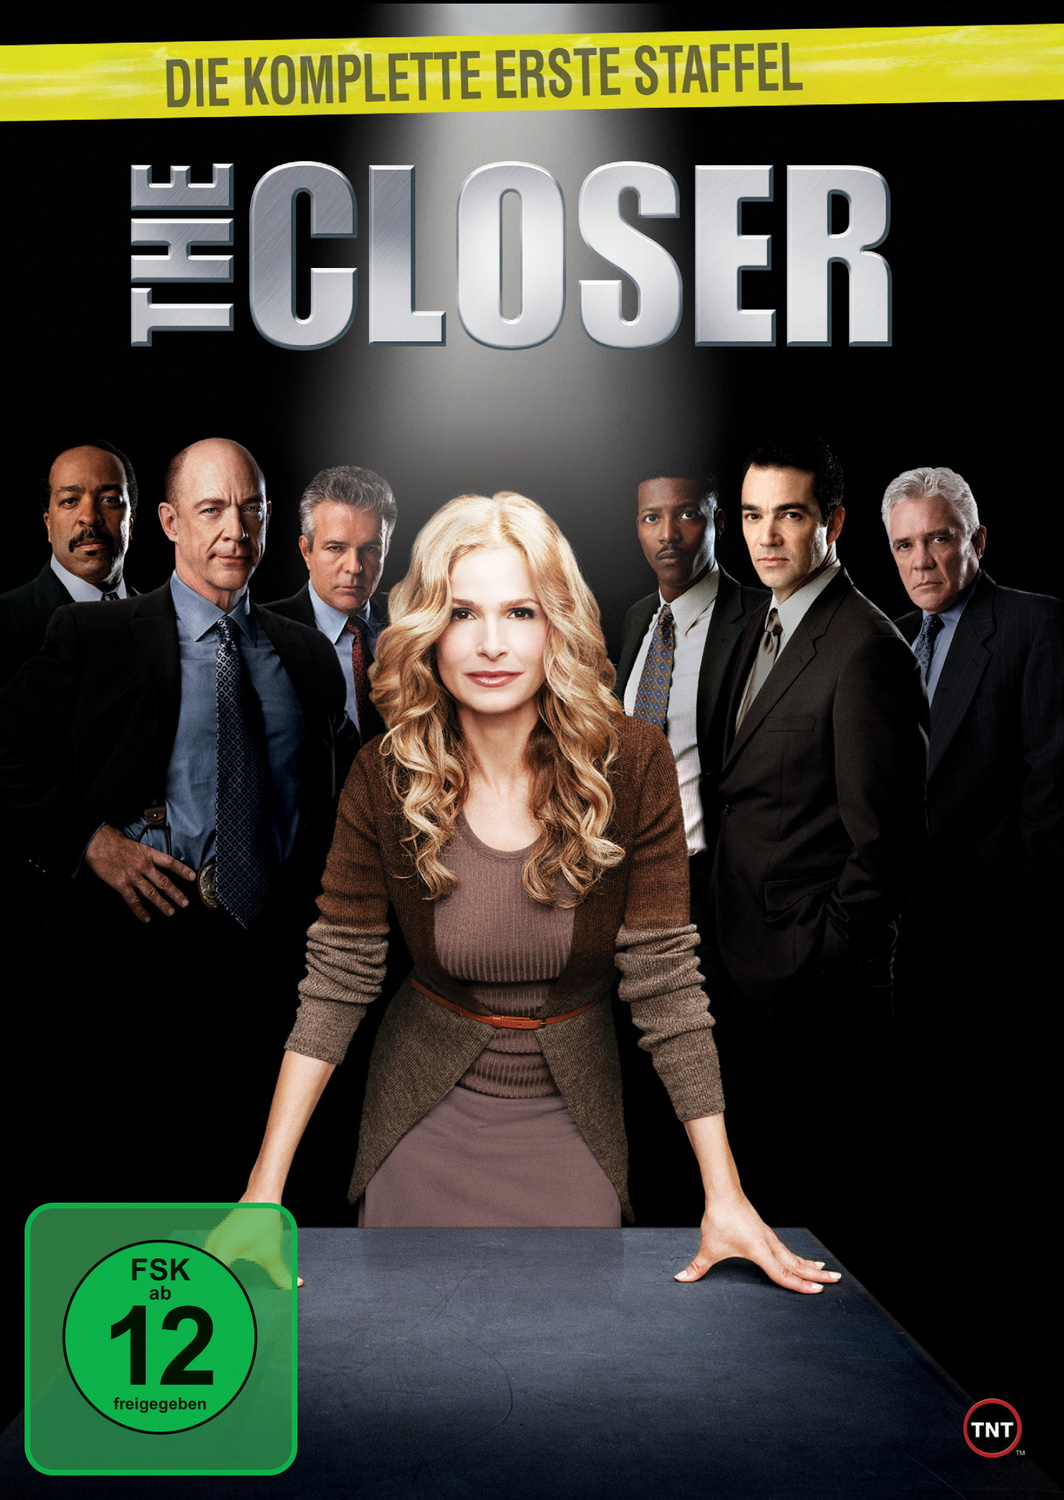 The Closer - Staffel 1 [4 DVDs]